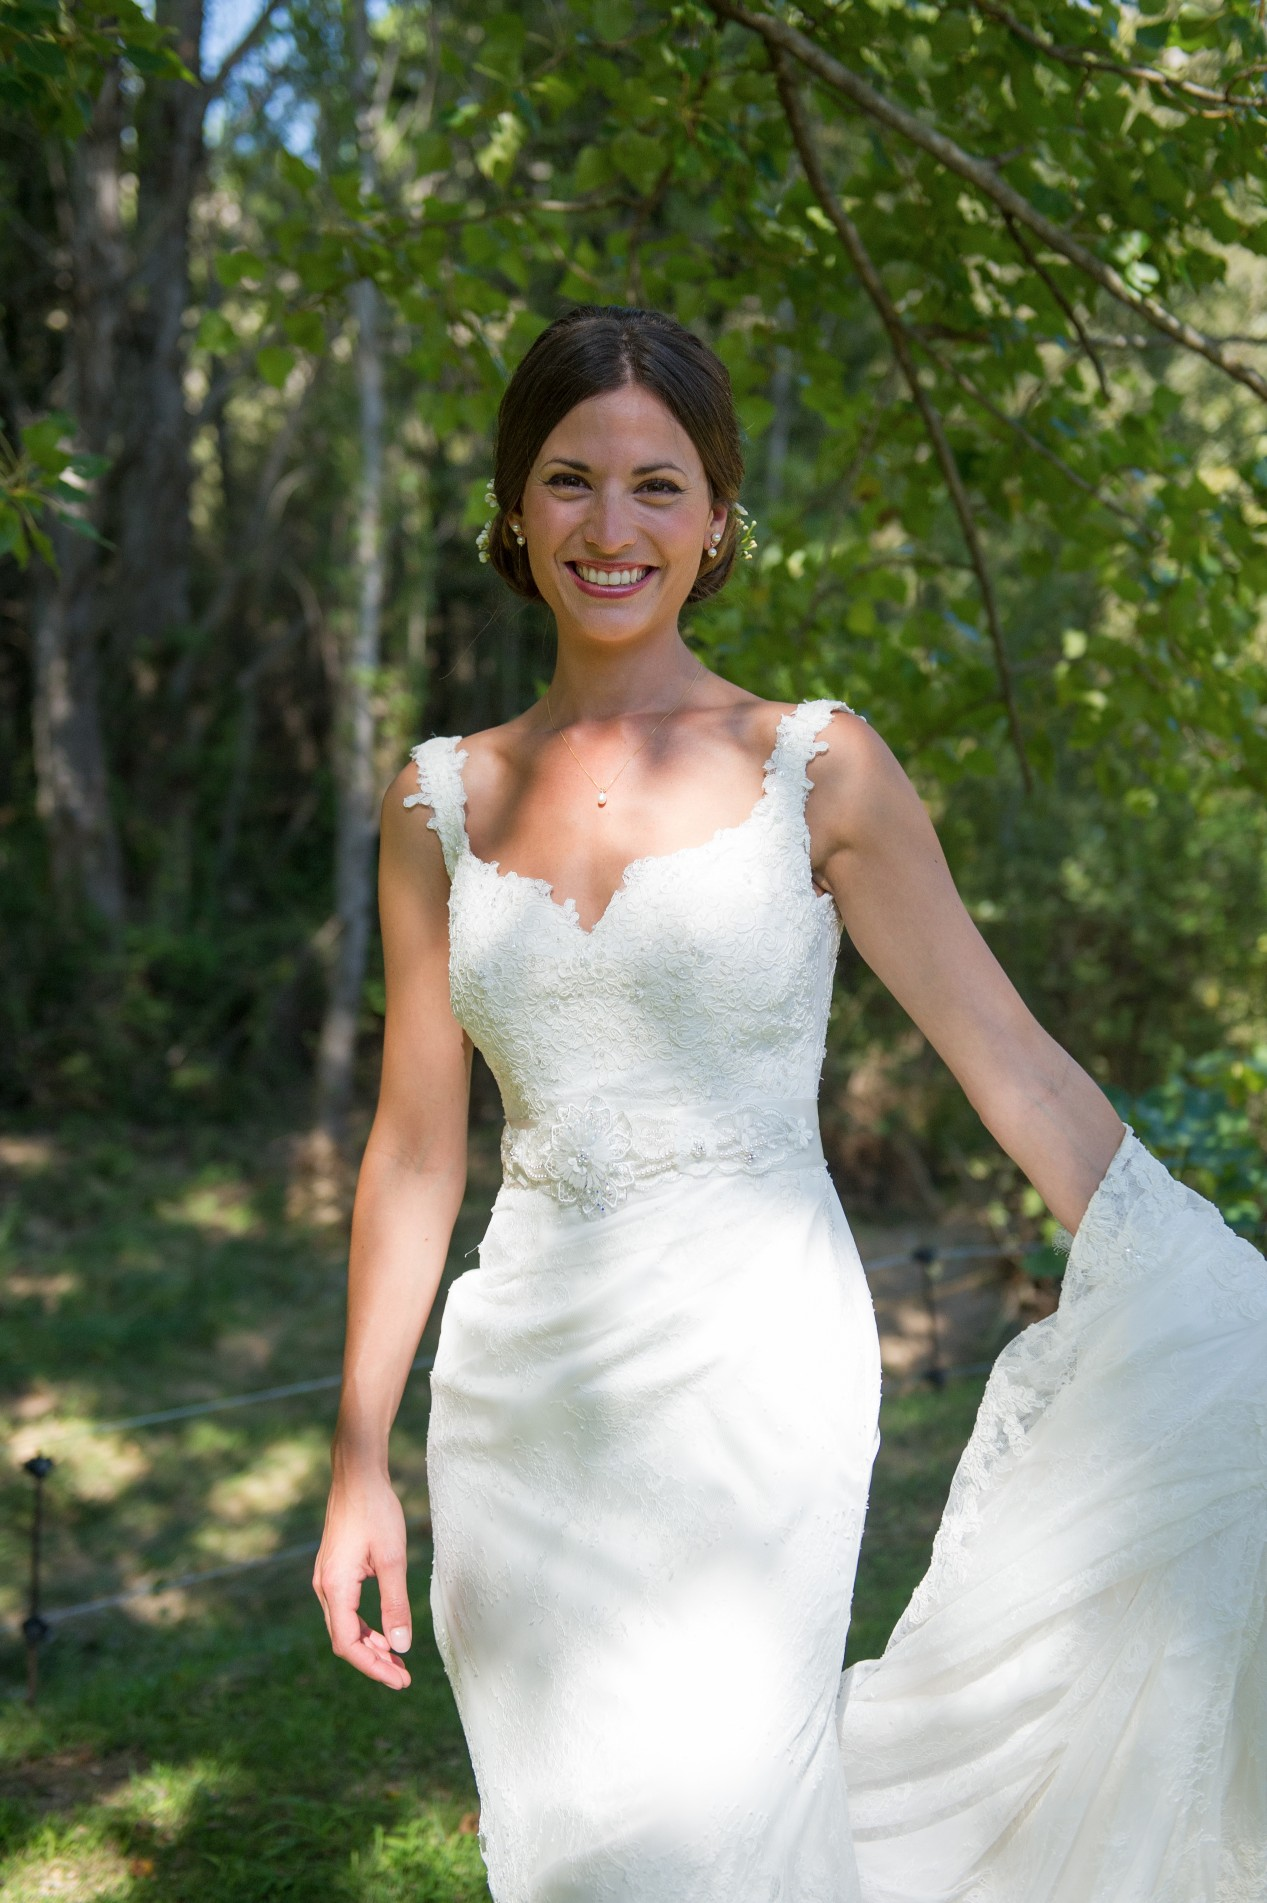 Wedding photography - South of France wedding - the bride